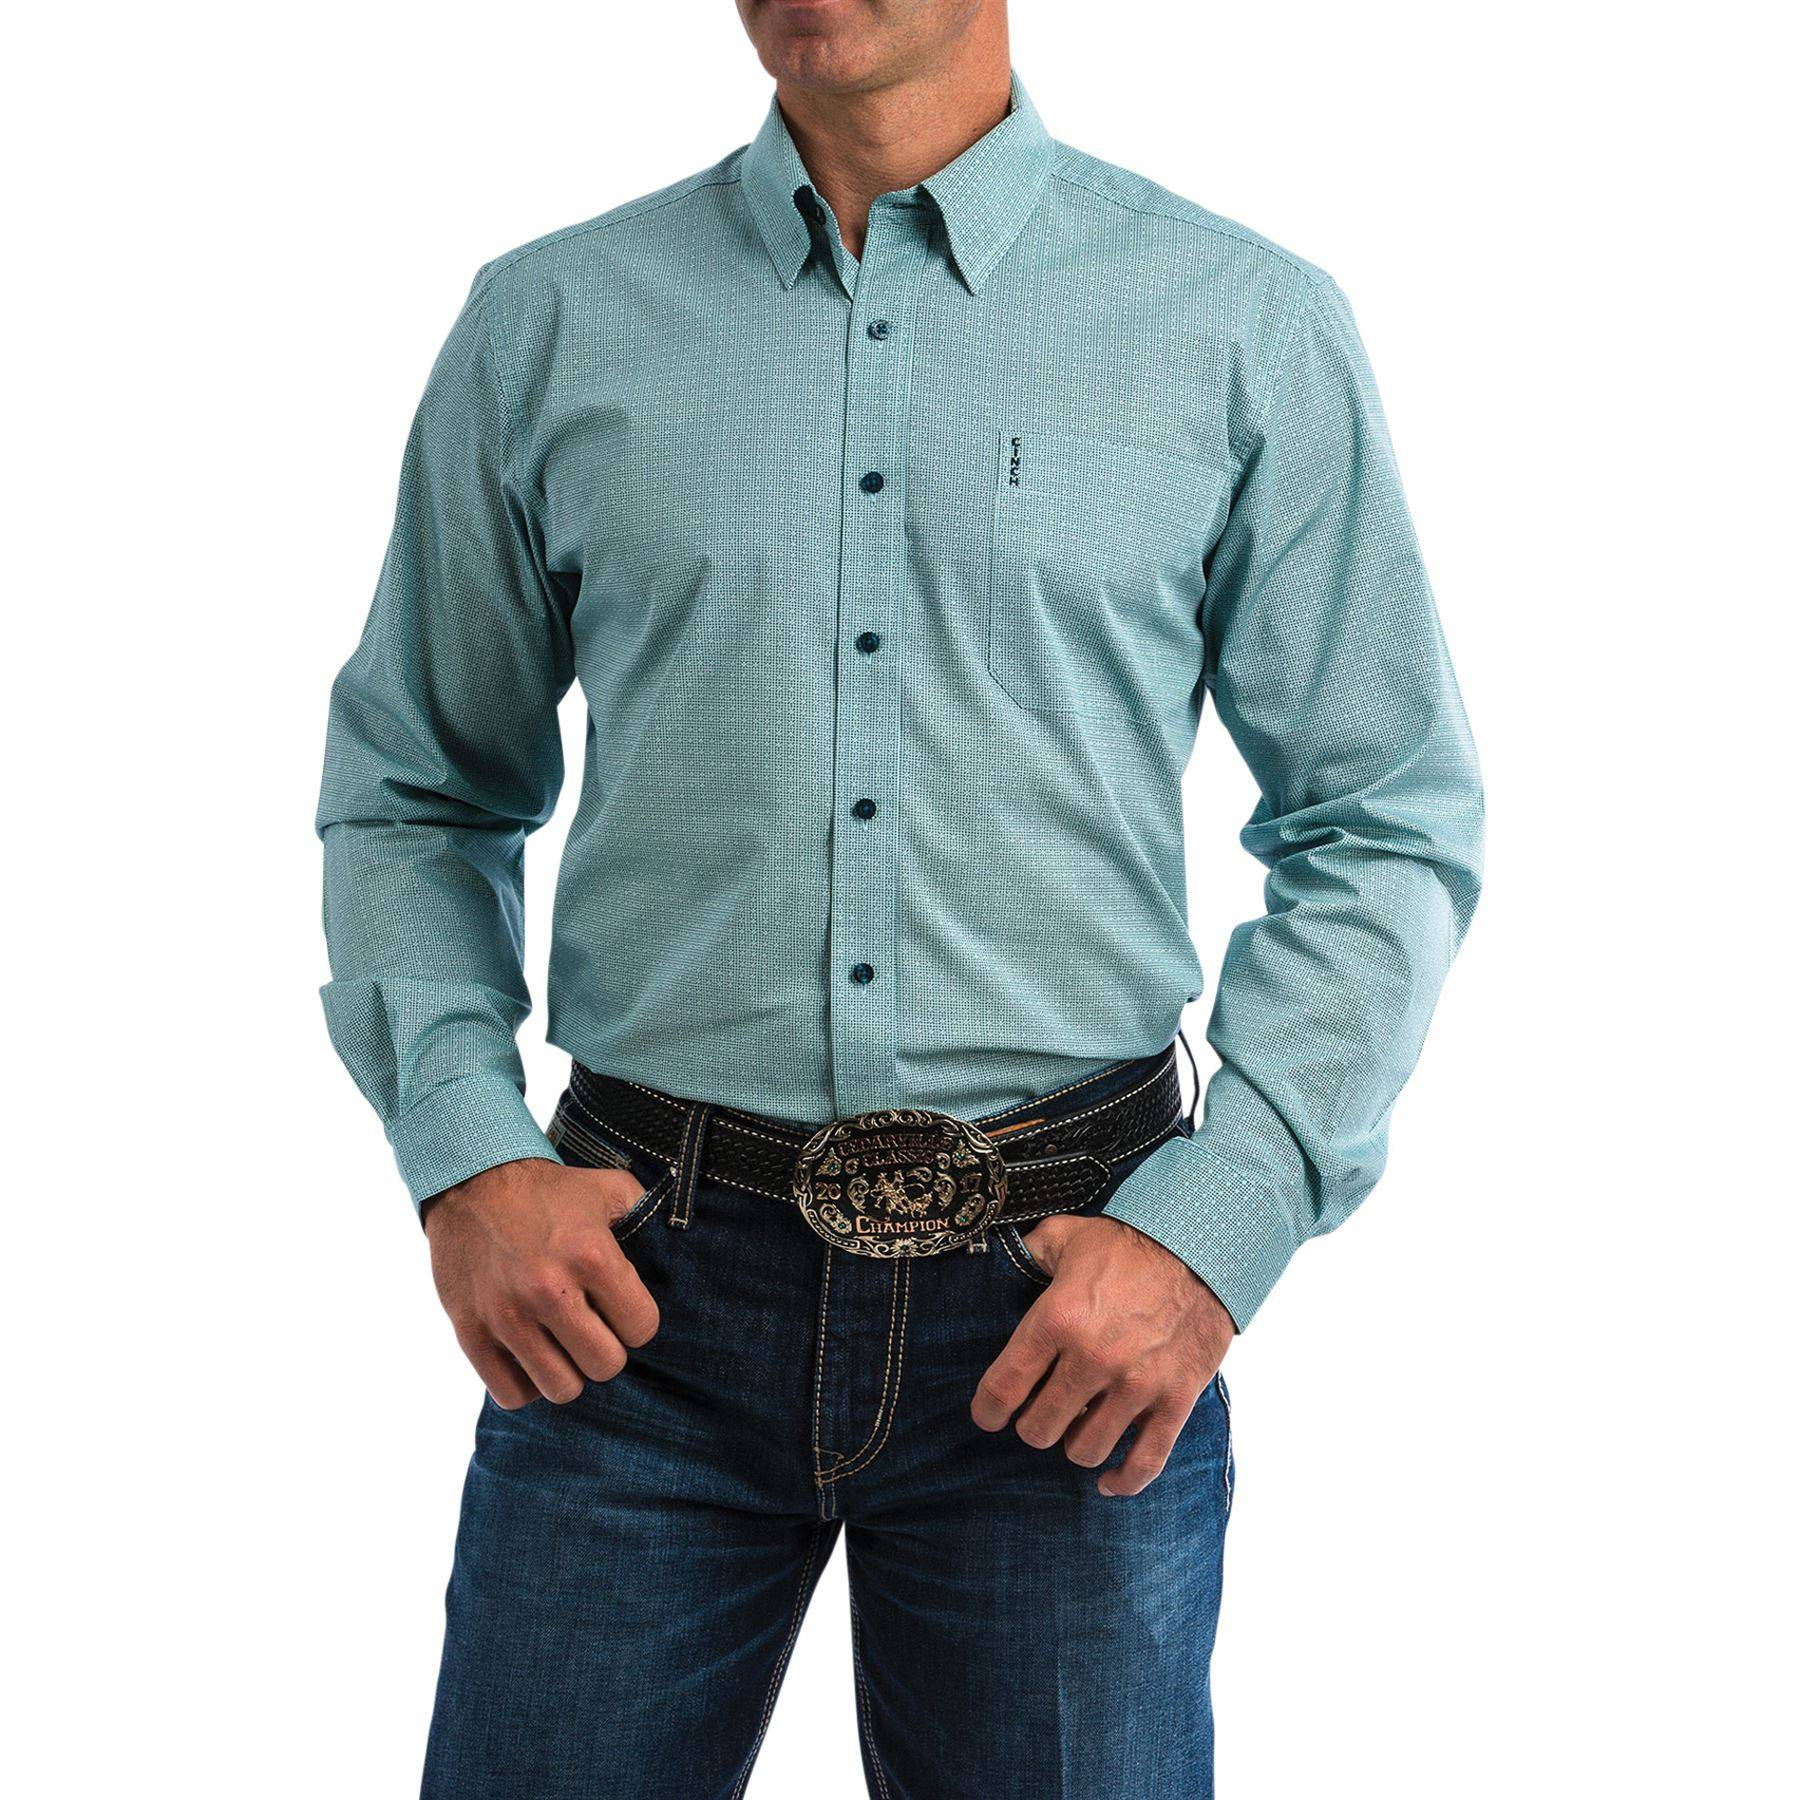 Cinch Mens Teal Printed Western Button Down Shirt In Apparelboots